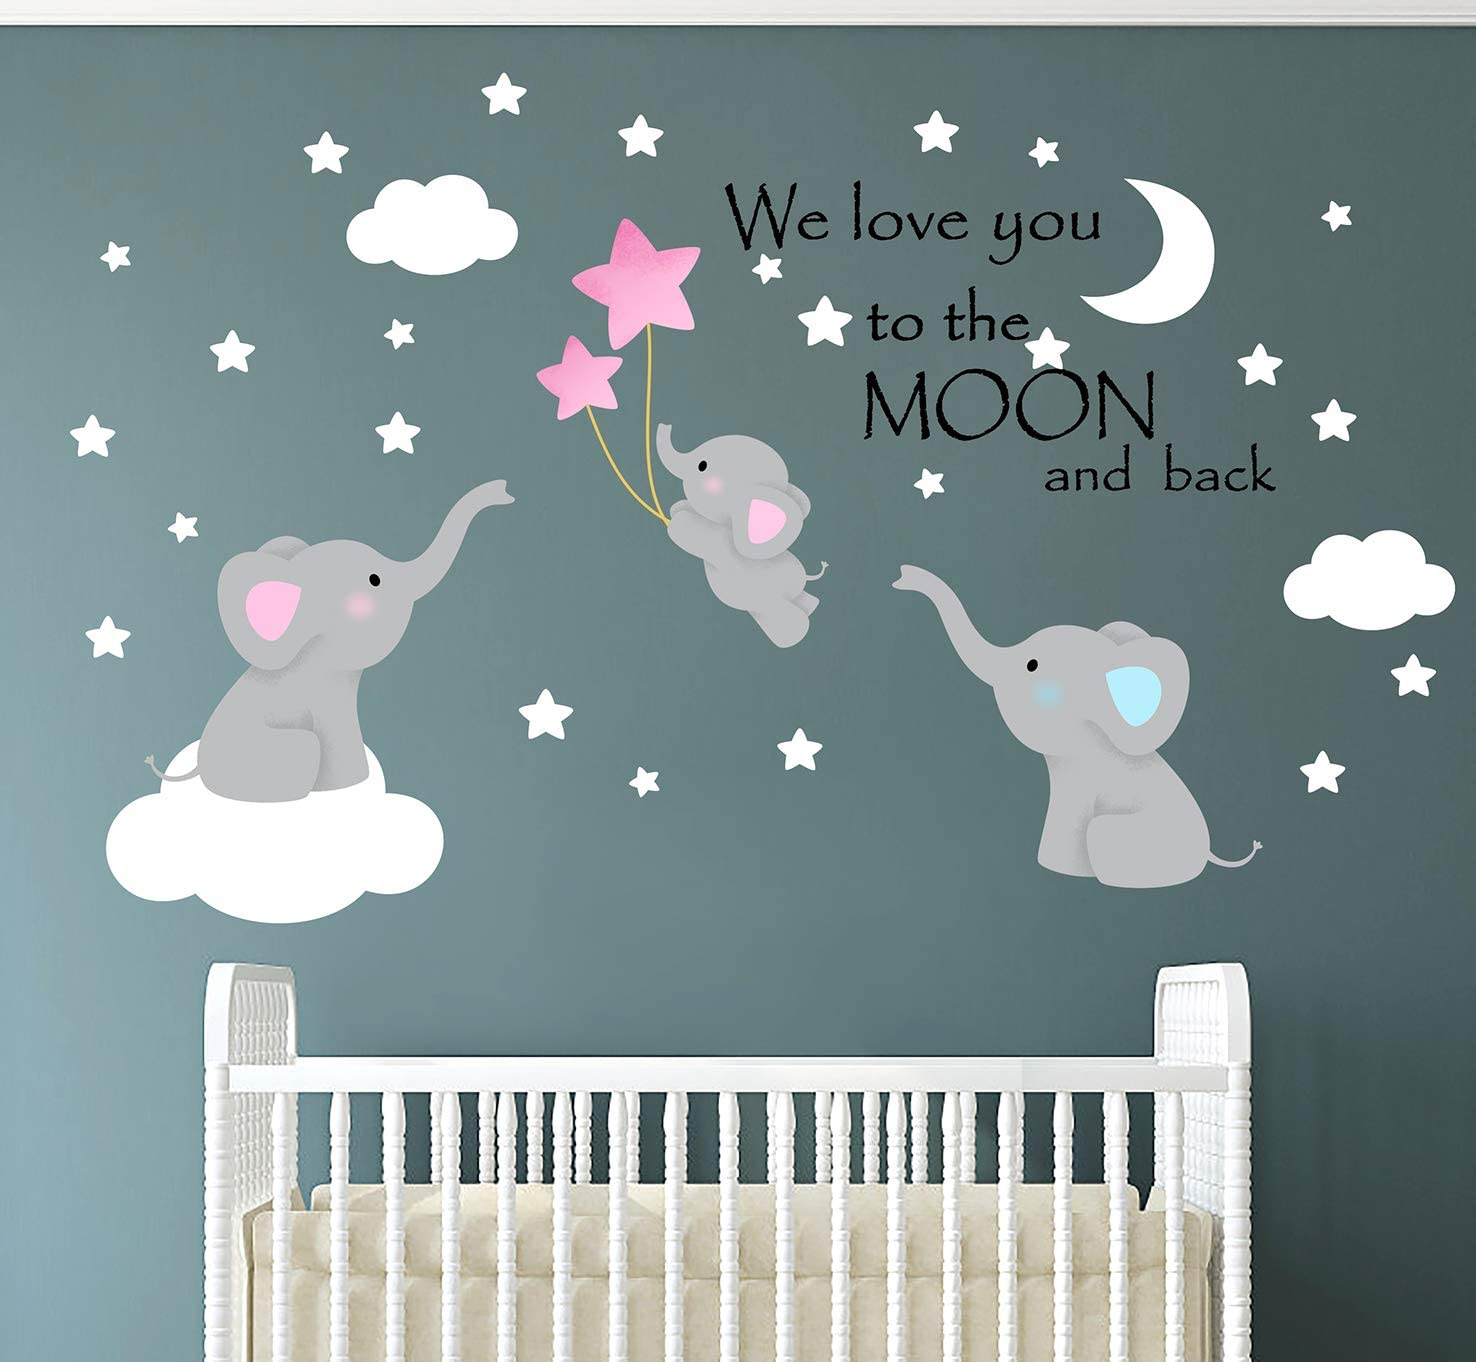 Family Elephant Wall Decal Baby Nursery Decor Kids Room Wall Stickers Large Cute Lovely Elephant Decals with Moon Stars Quote Home Decorations Love You to The Moon and Back 60''W x48''H